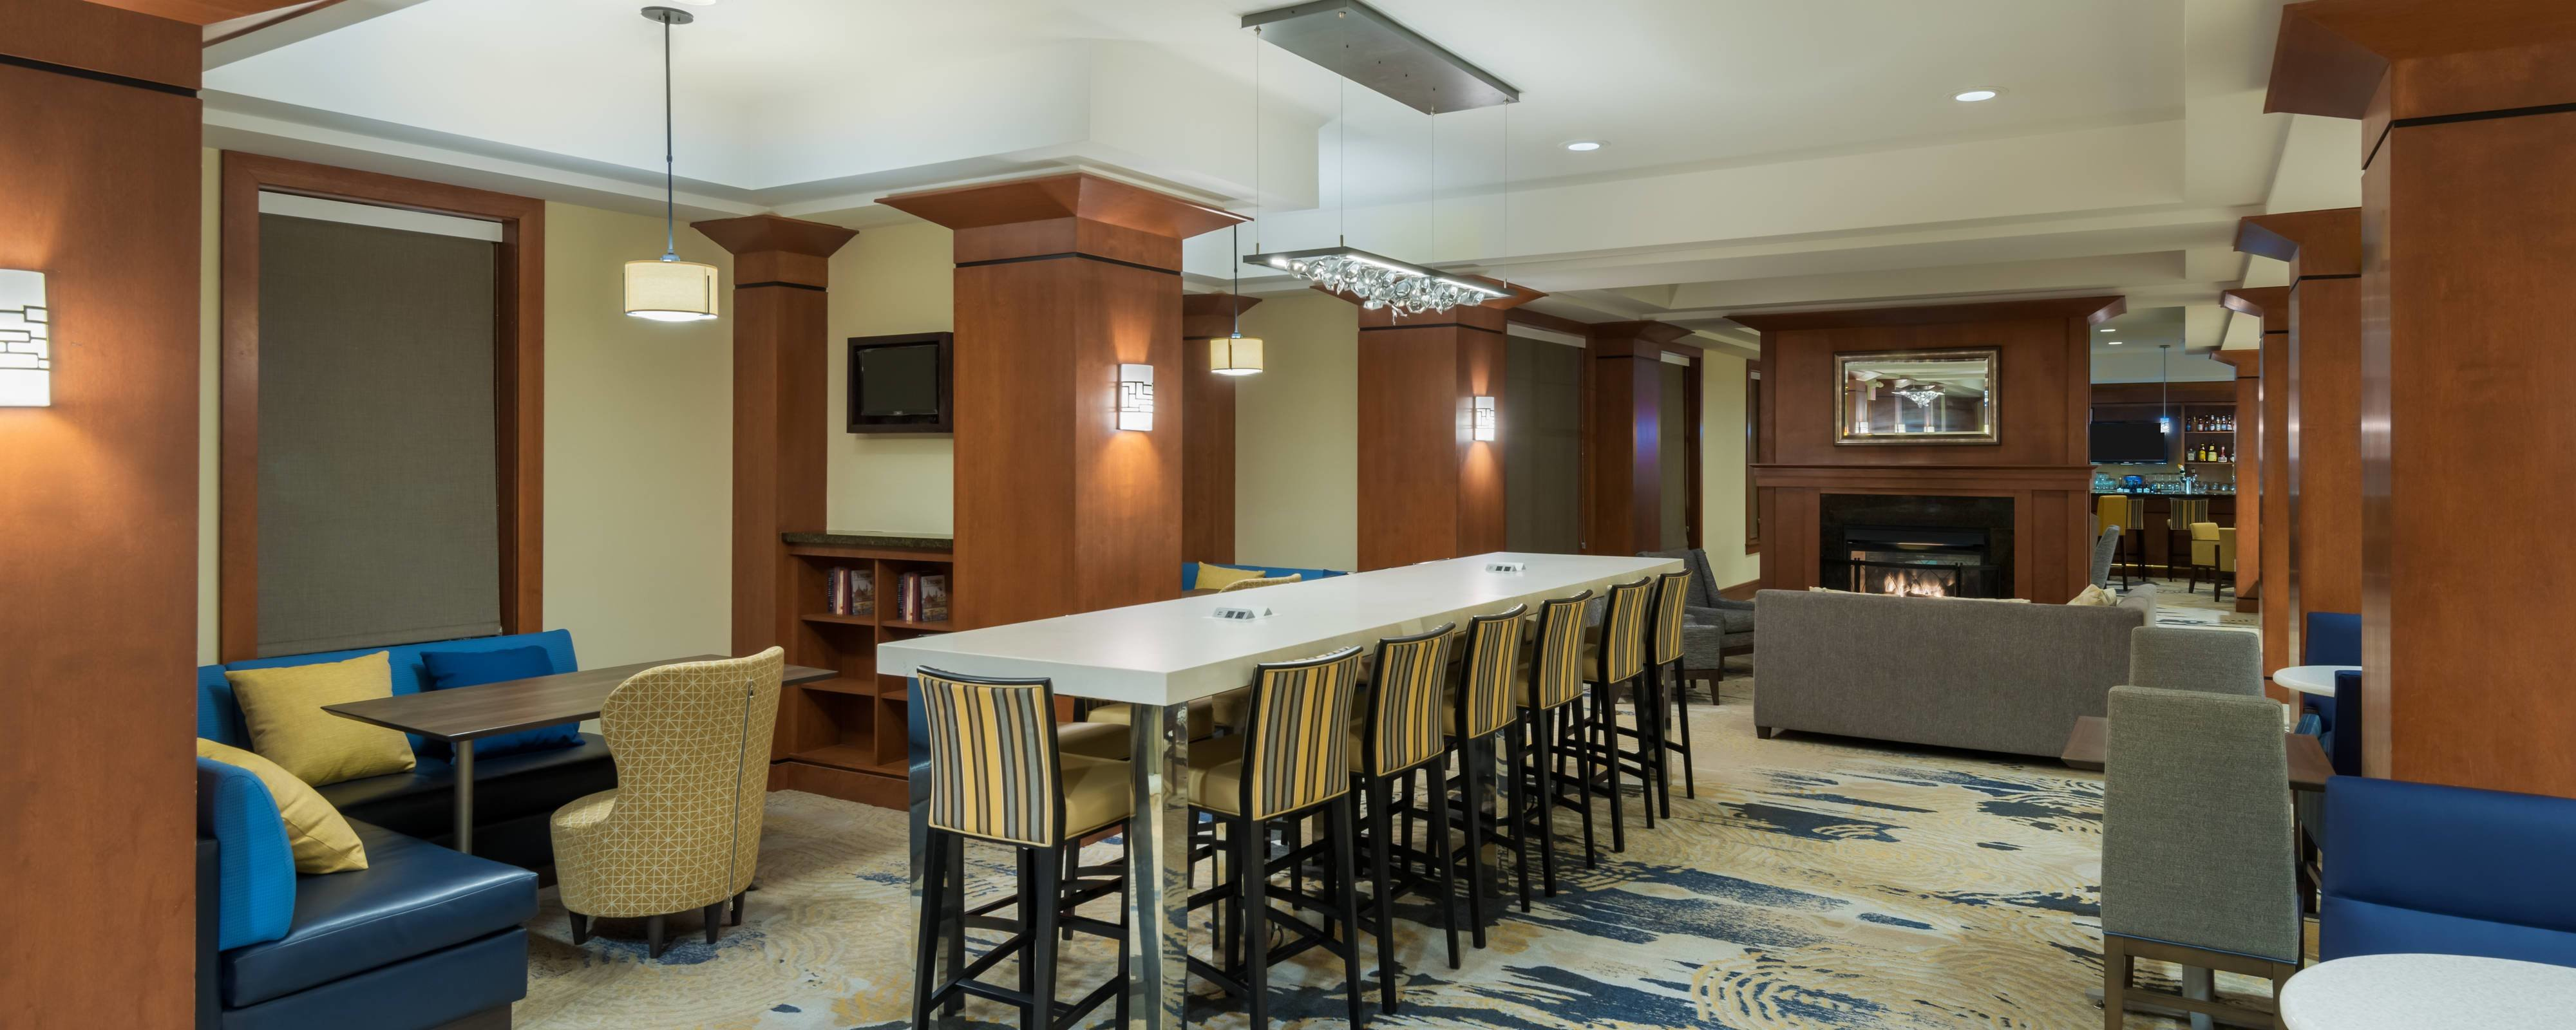 Best Downtown St Louis Extended Stay Hotel Residence Inn With Pictures